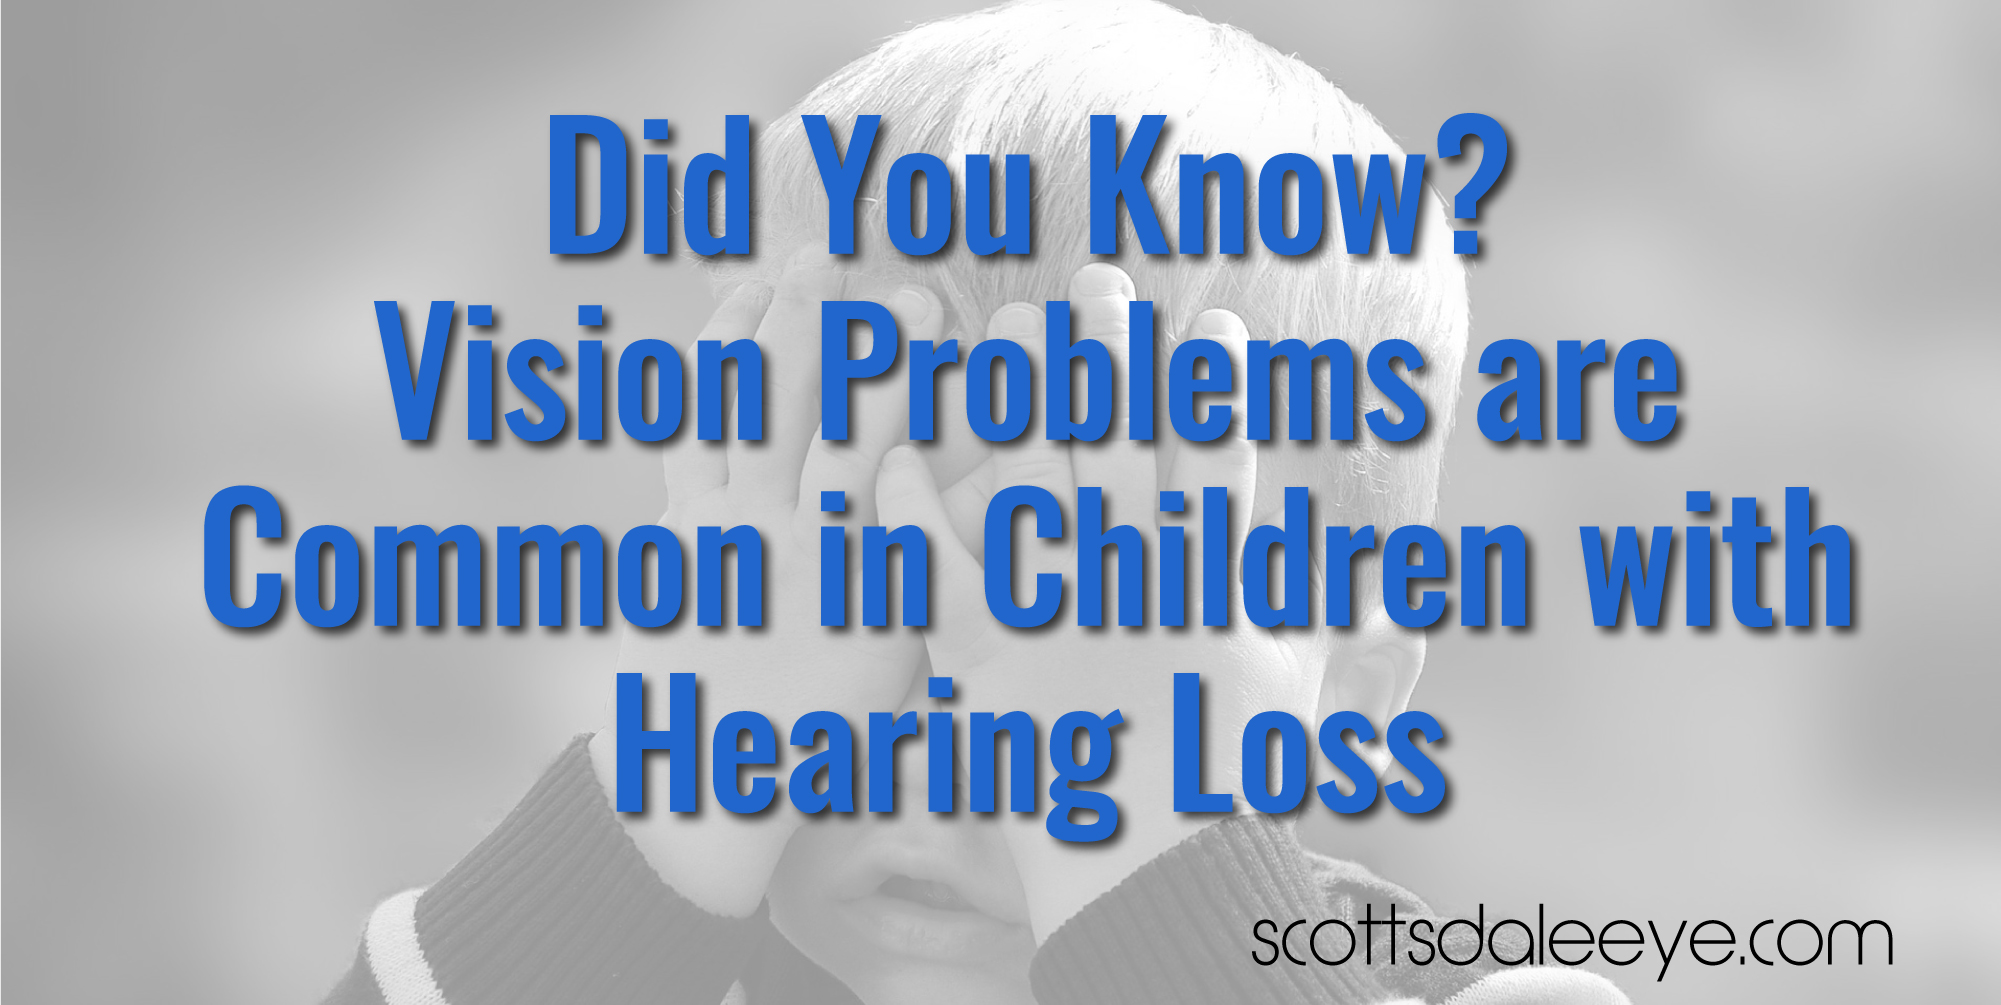 Did You Know? Vision Problems are Common in Children with Hearing Loss